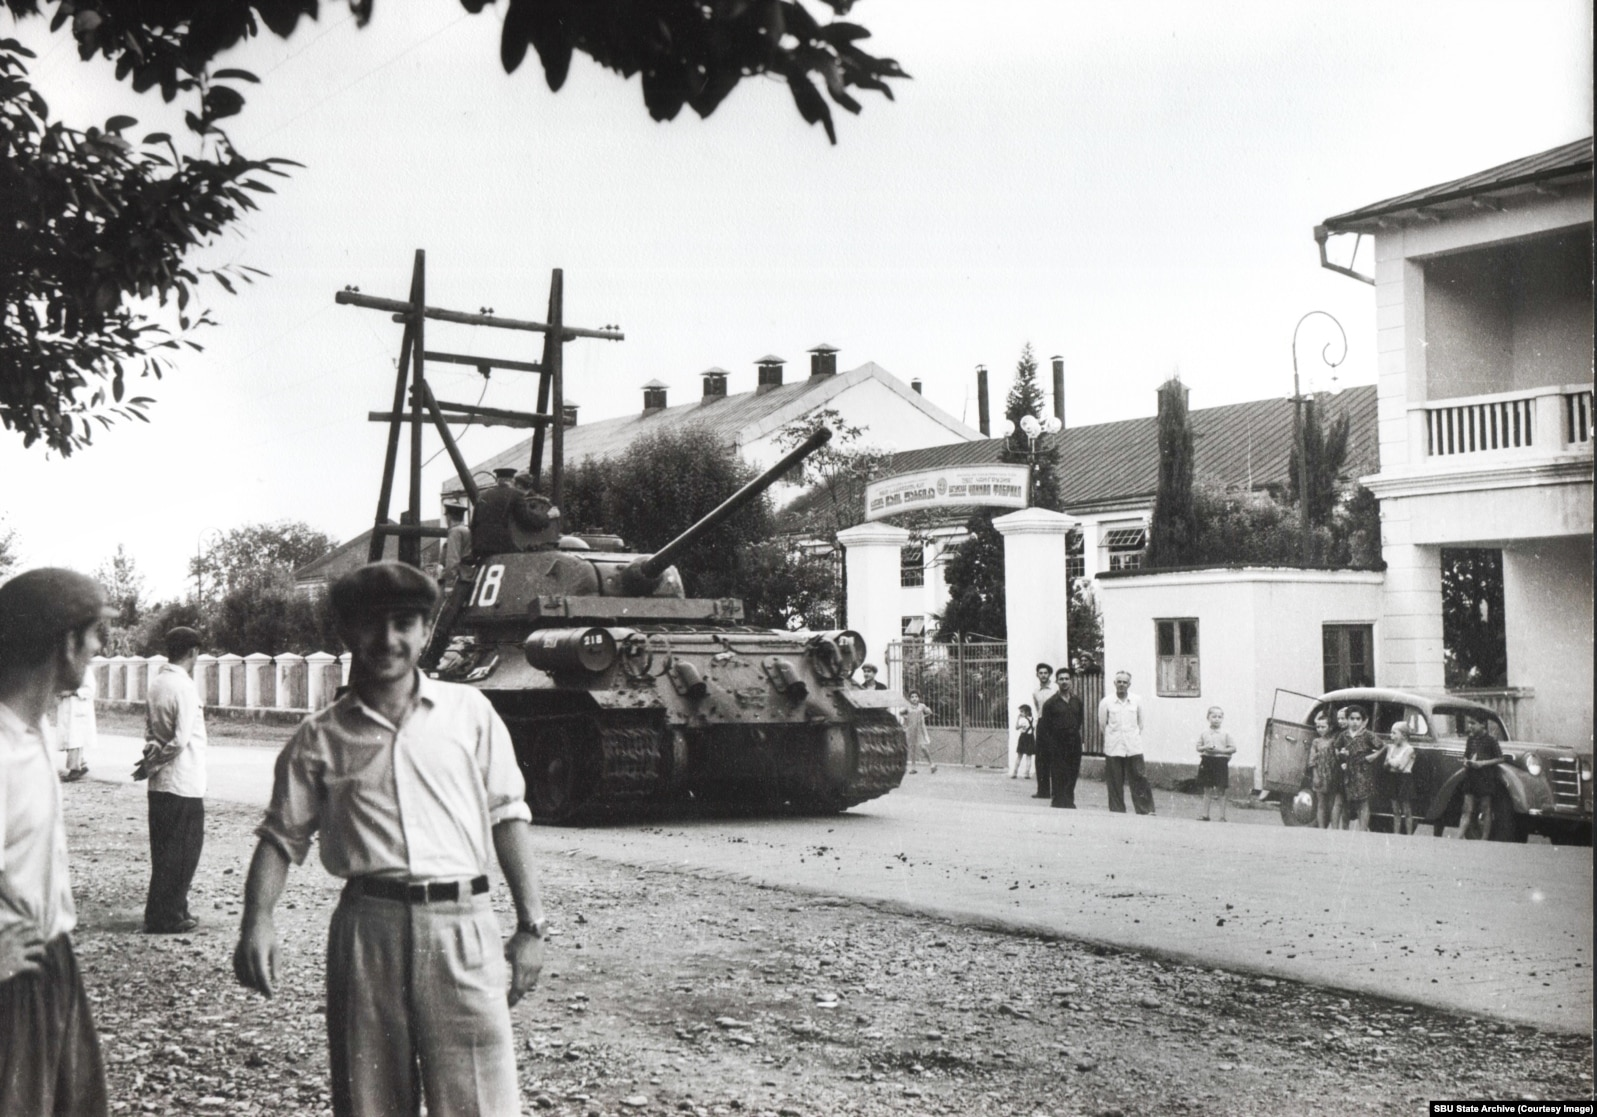 Galeotti's photo of the Soviet tank rolling down a Georgian street, likely Batumi, in 1963.*